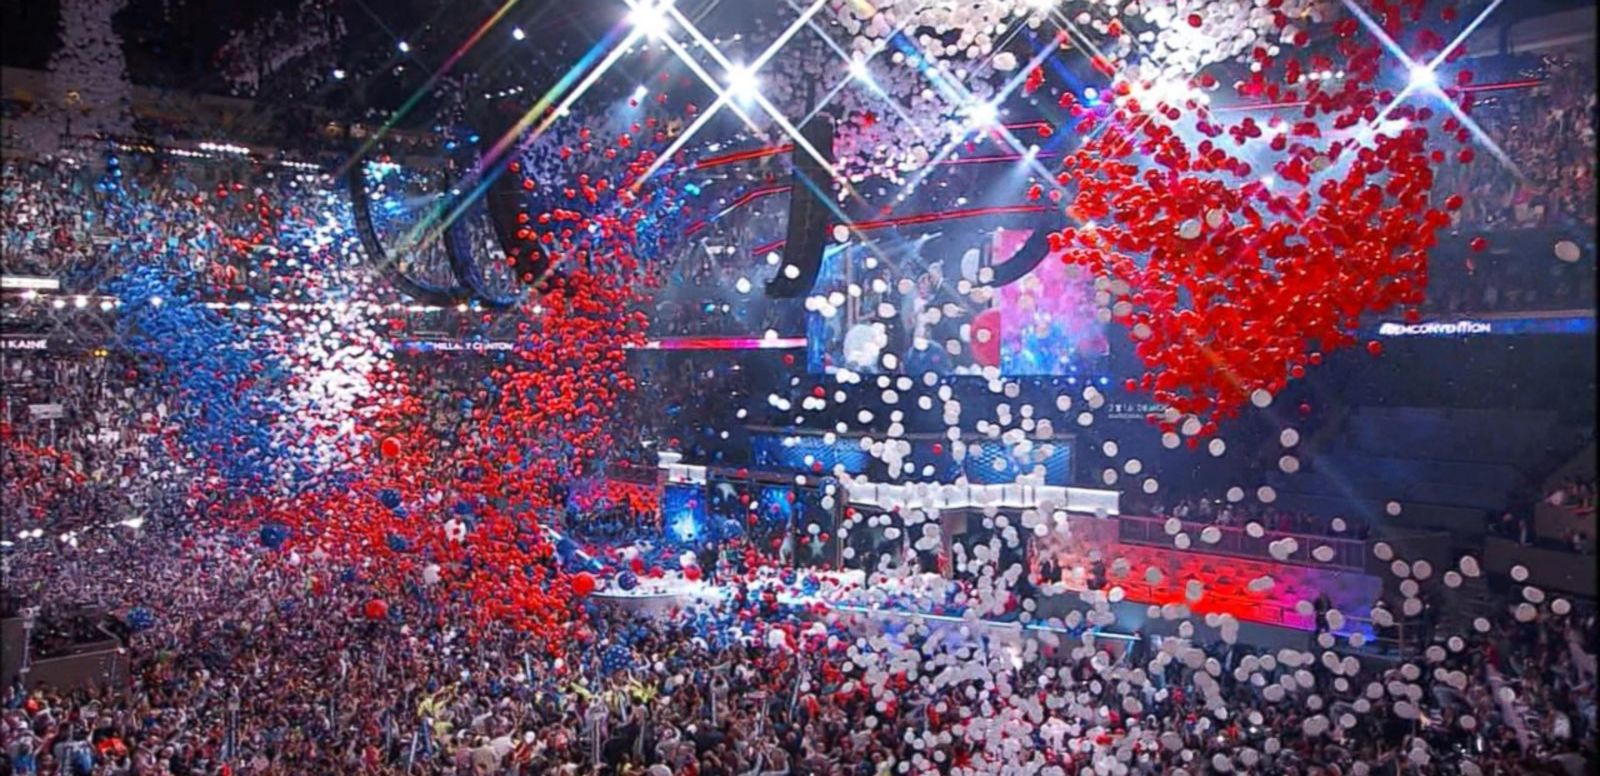 VIDEO: Balloon Drop Marks the Close of the 2016 Democratic National Convention